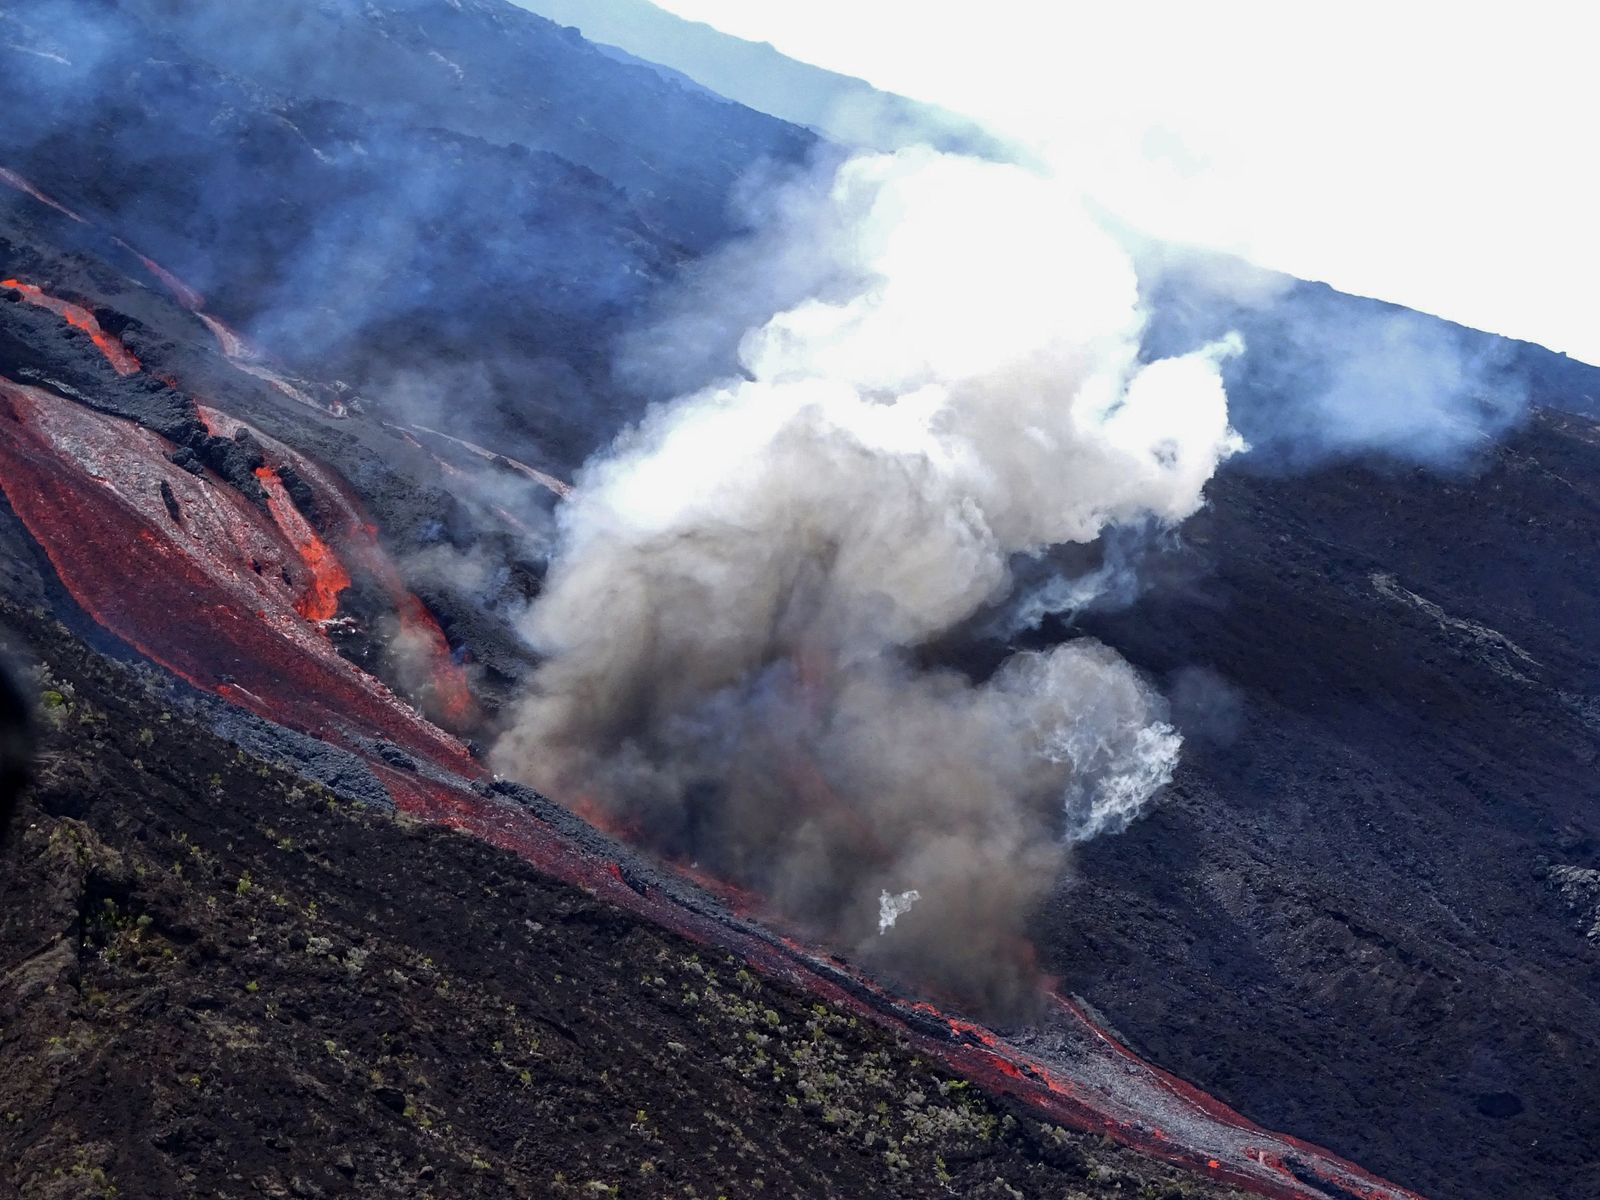 Piton de la Fournaise - Recognition made around 1:30 p.m. on February 10, 2020 with IPR / Twitter